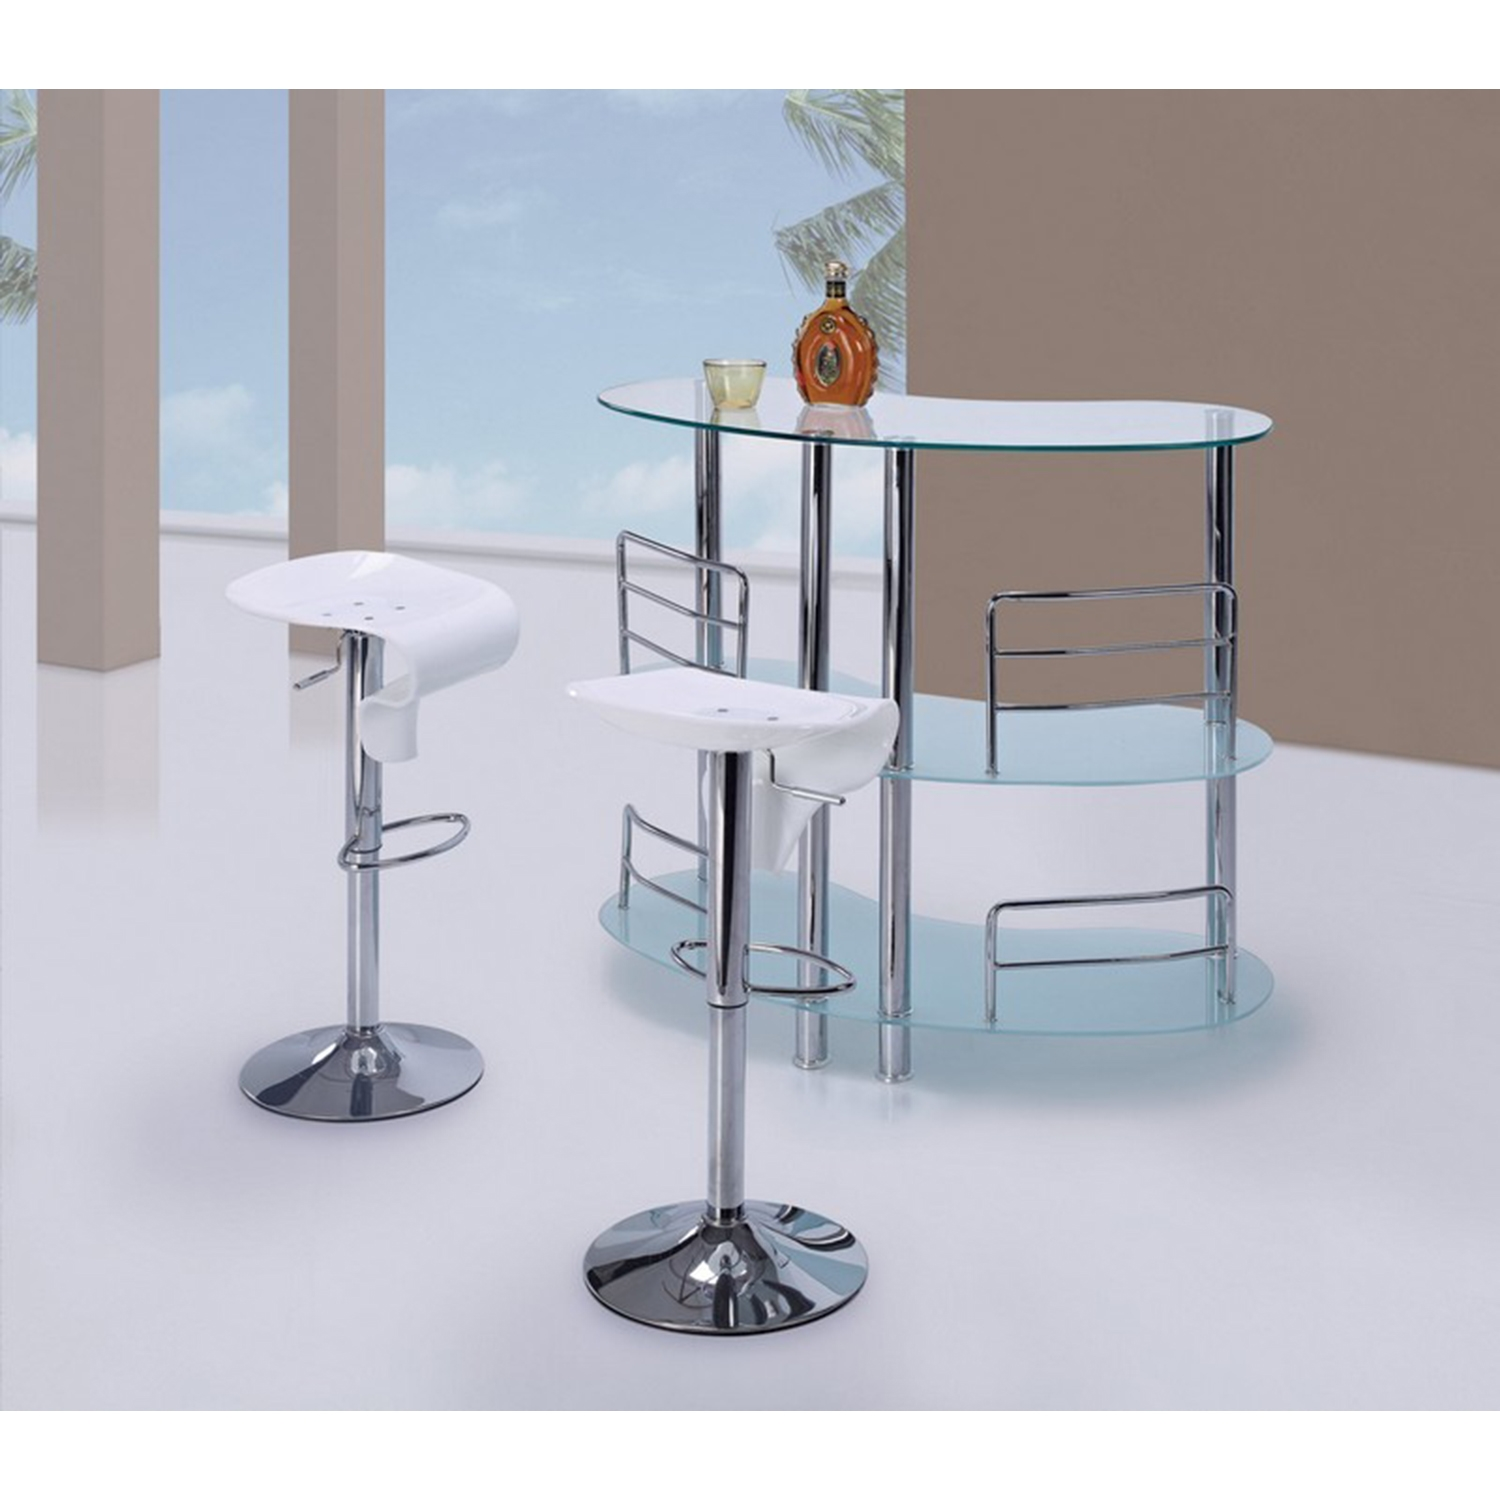 Maya Bar Table - Frosted Glass, Chrome Legs - GLO-MBT02-FR-M